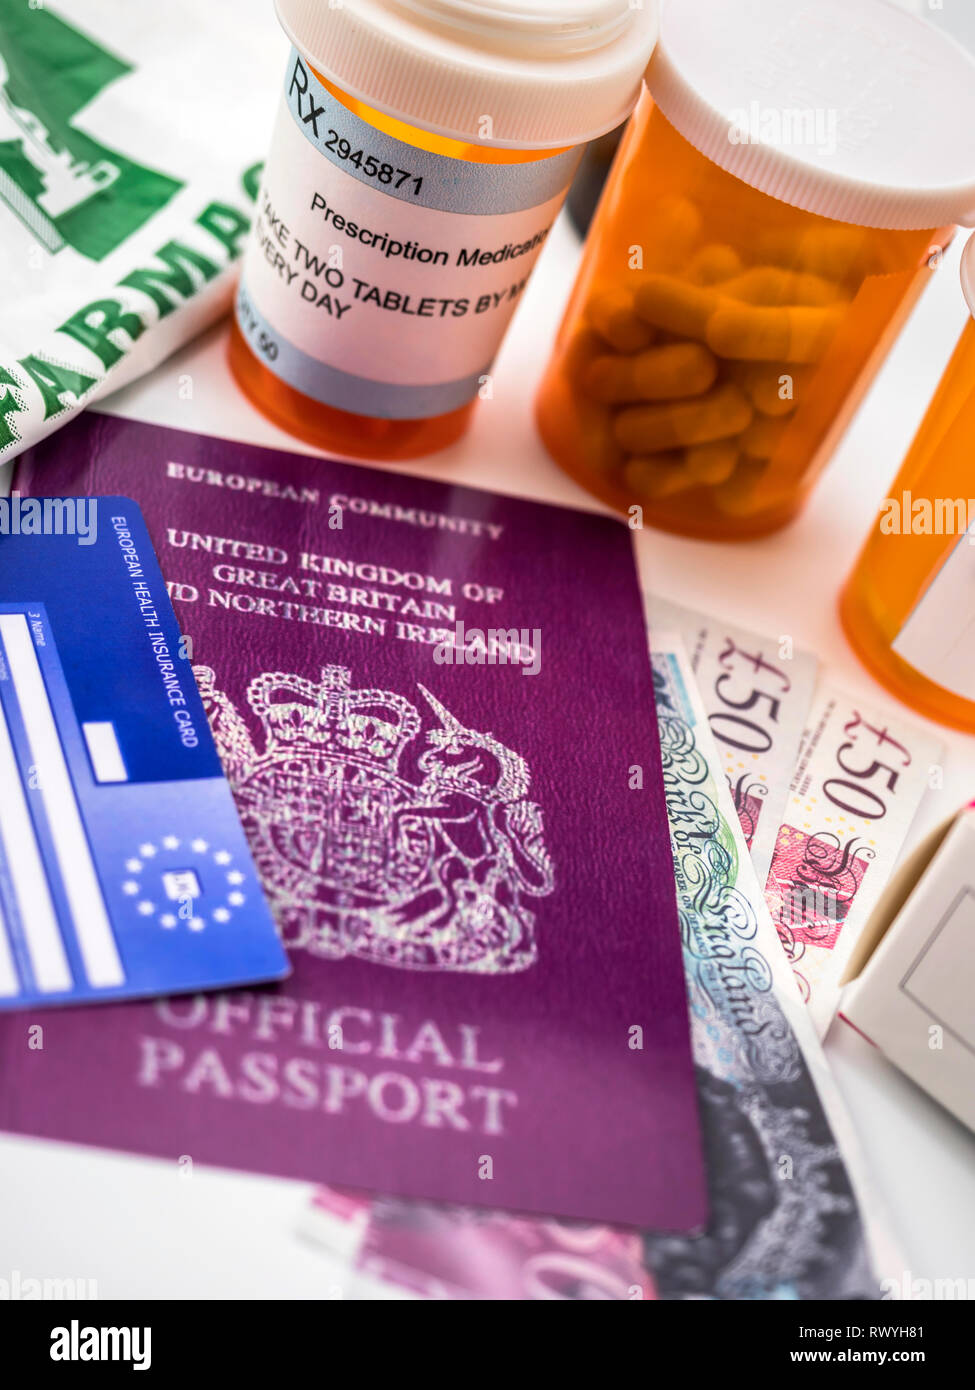 British passport and European health card along with several capsules, concept of medical price in the crisis of Brexit, conceptual image, vertical co - Stock Image